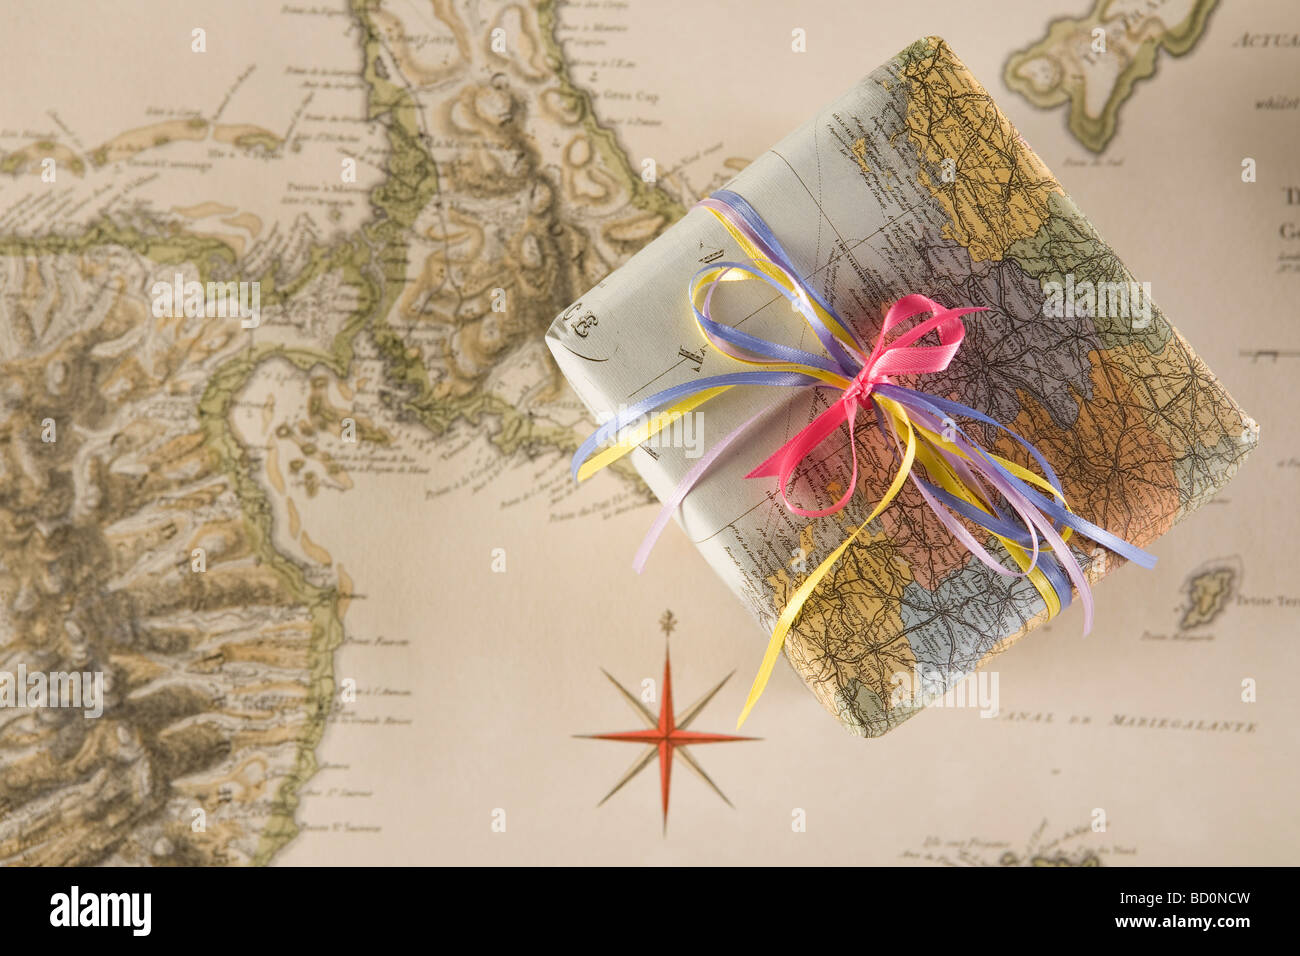 Gift for 'bon voyage' party - Stock Image